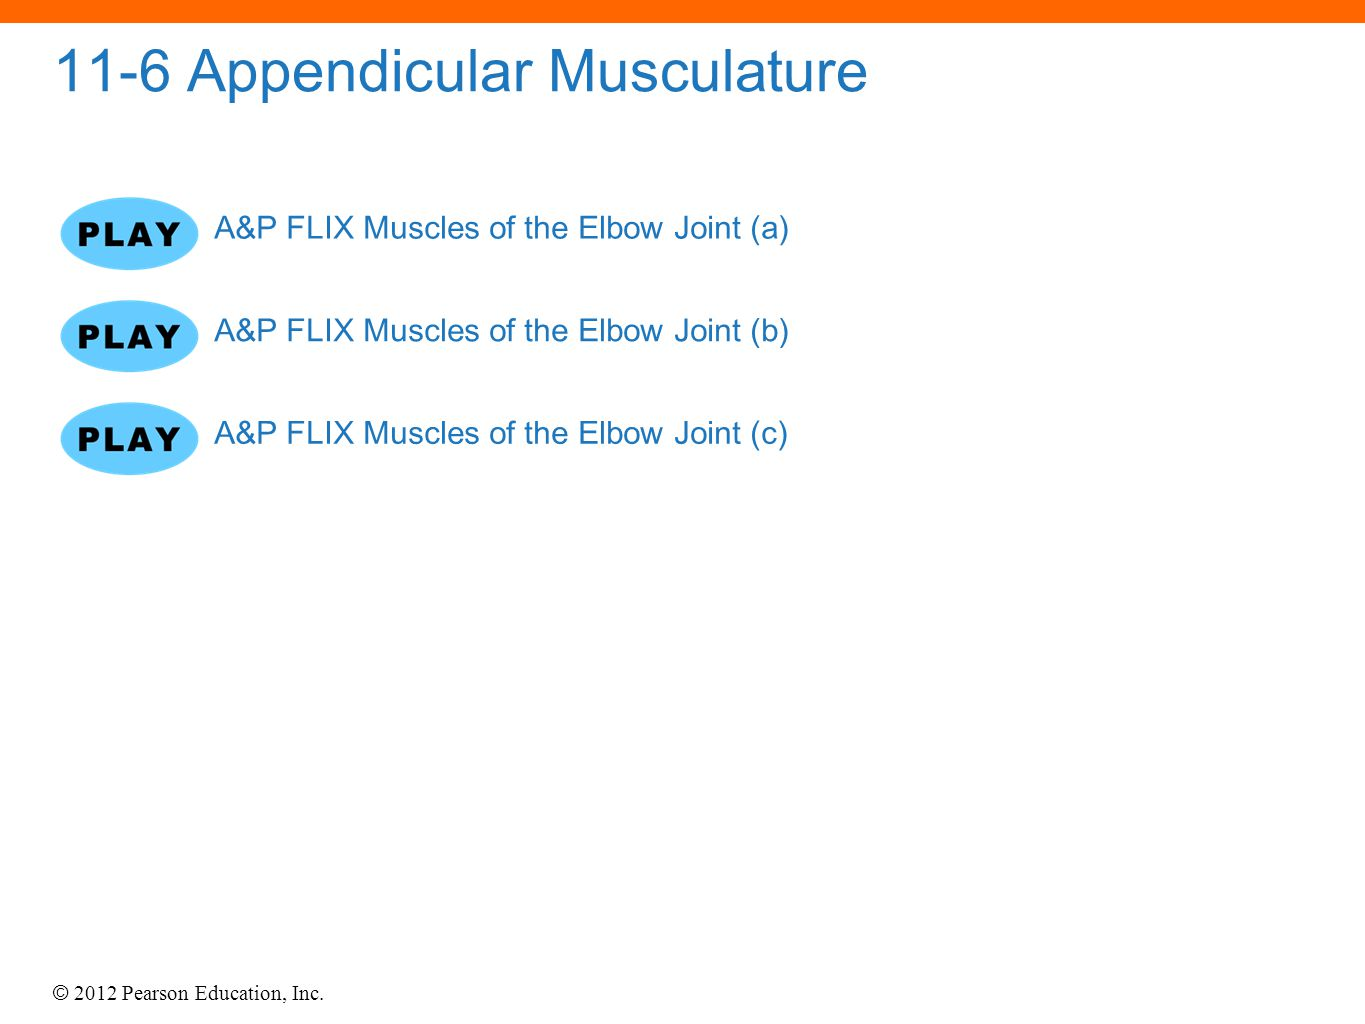 © 2012 Pearson Education, Inc. 11-6 Appendicular Musculature A&P FLIX Muscles of the Elbow Joint (a) A&P FLIX Muscles of the Elbow Joint (b) A&P FLIX